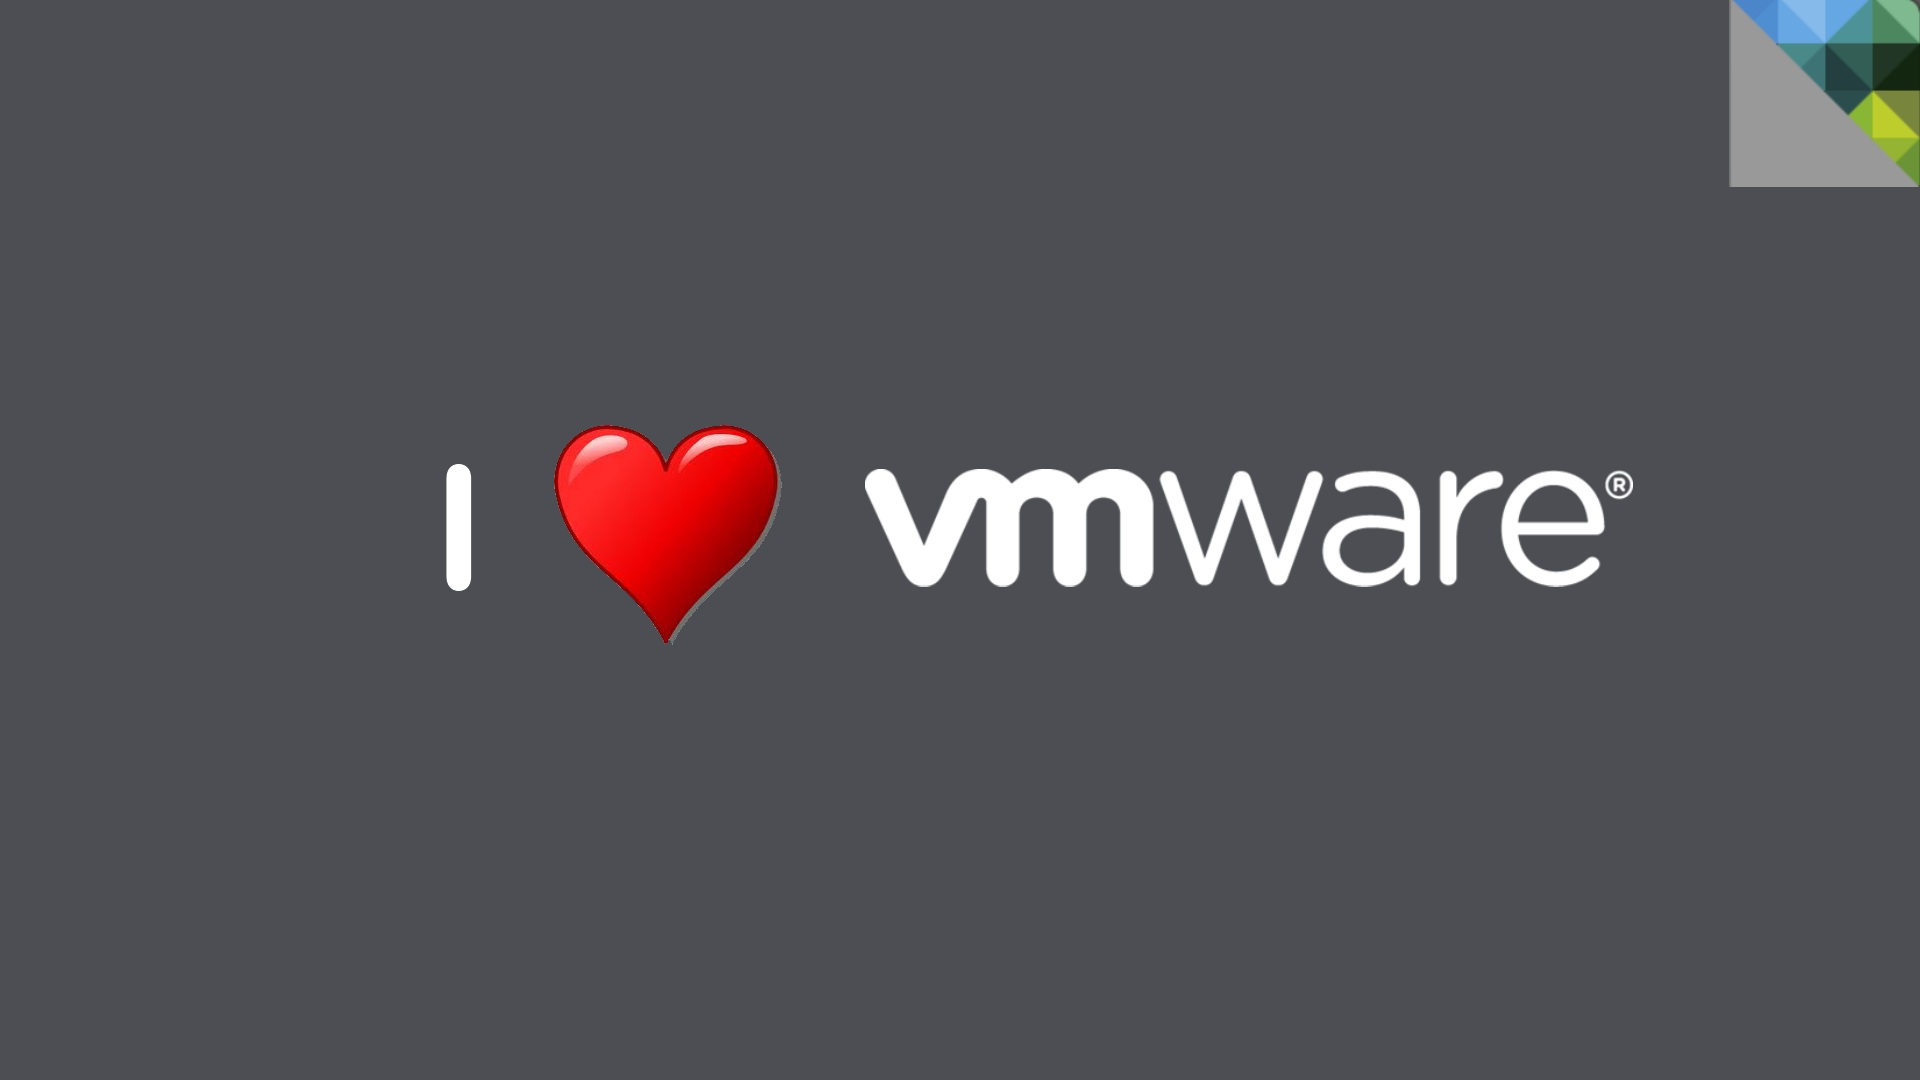 vmware_gray_corner_peel_heart_vmware_wallpaper